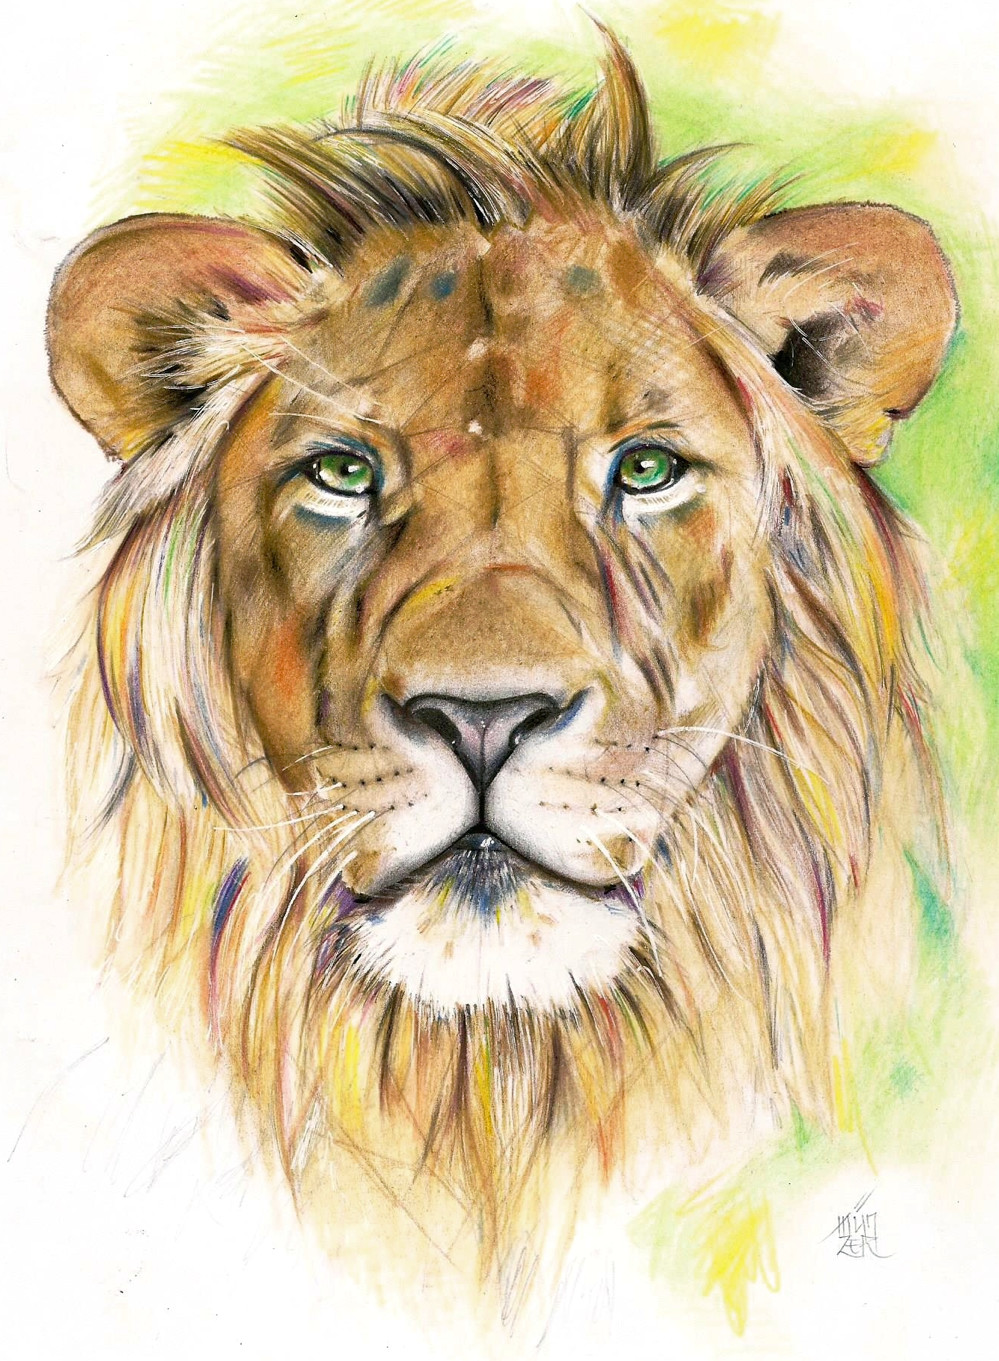 colored pencils drawing a4 love drawings pencil drawings lion art drawing lessons